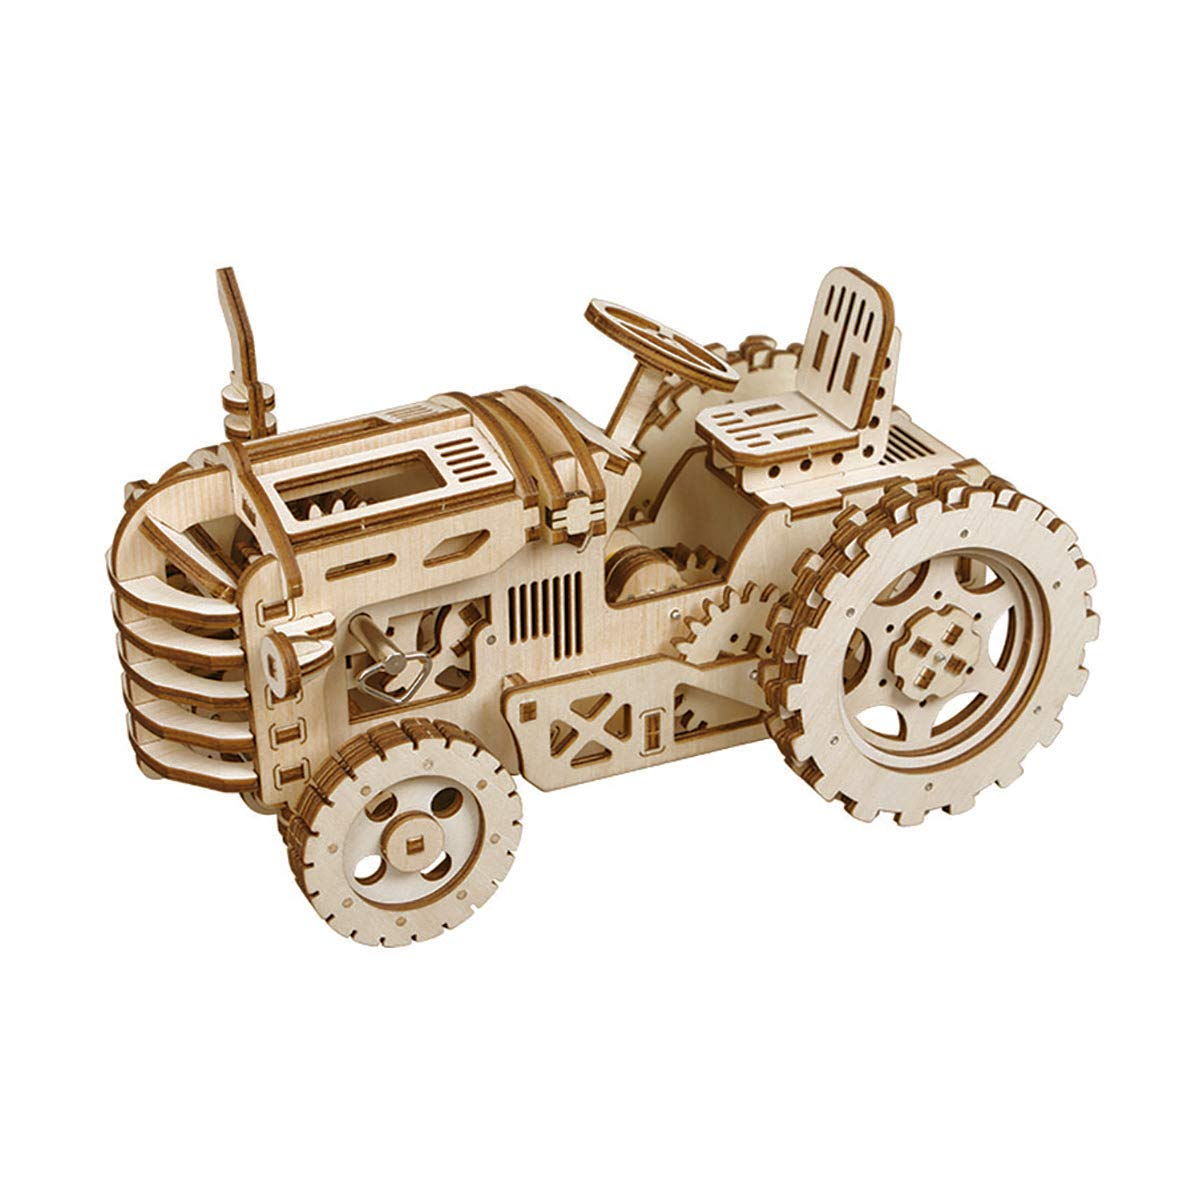 TuToy Diy 3D Wooden Tractor Puzzle Model Kit Mechanical Gears Brain Teaser Desktop Decorations Birthday Gift